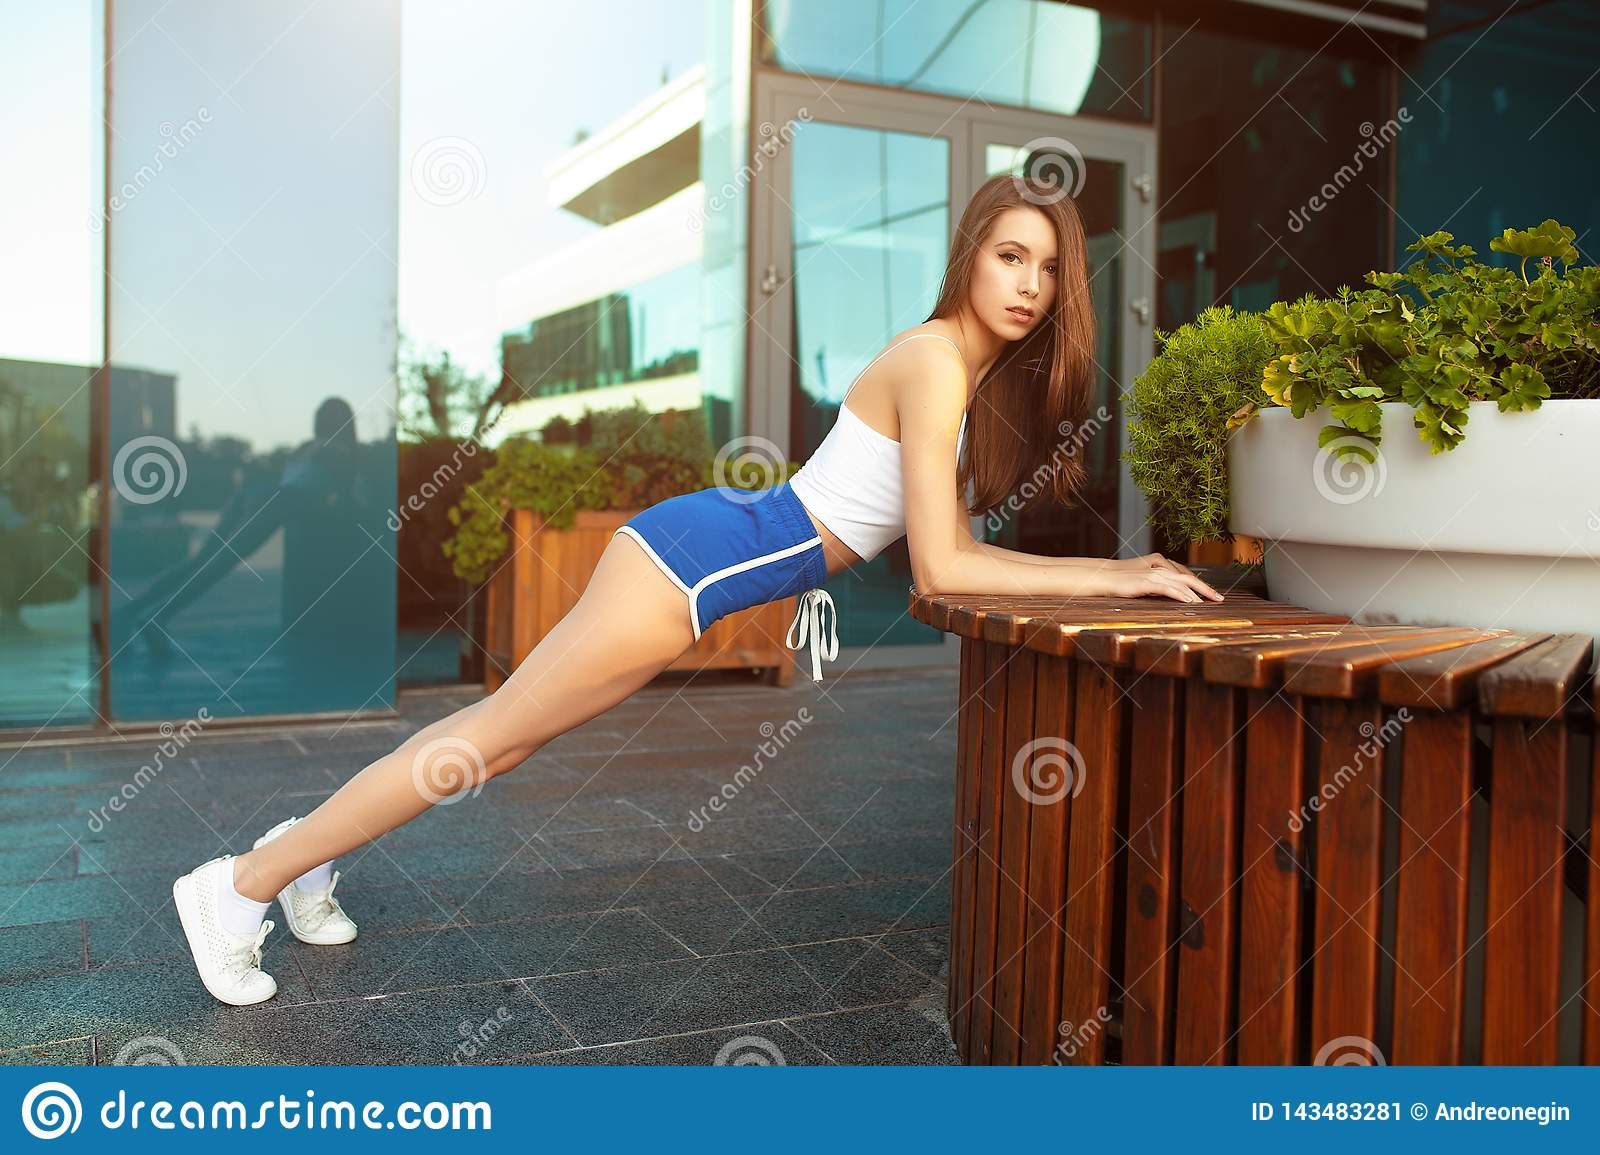 Slim fitness young woman Athlete girl doing plank exercise outside. Concept training workout crossfit gymnastics cross fit